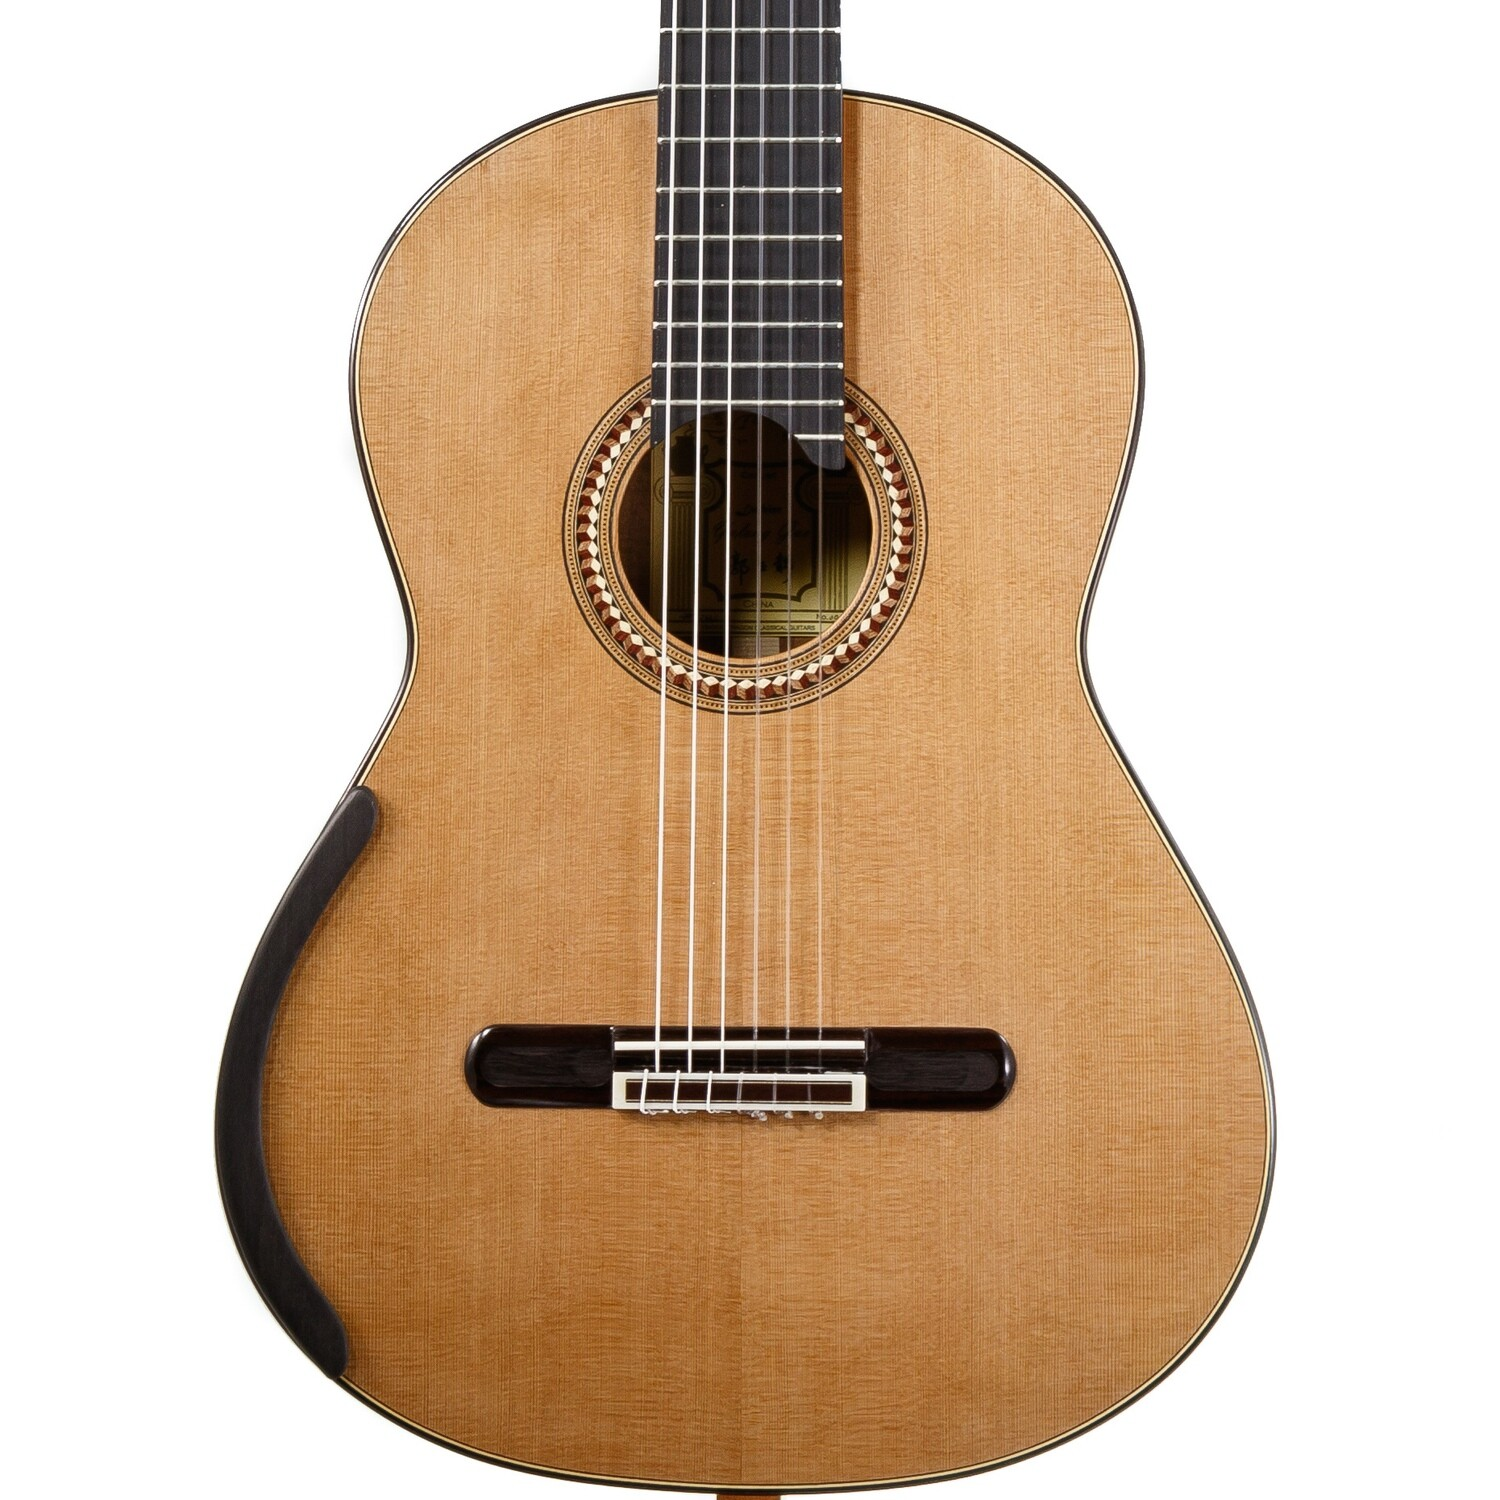 Yulong Guo Concert Model - Cedar Double Top, solid Koa Back/Sides - 650mm Scale Length - 2020-004